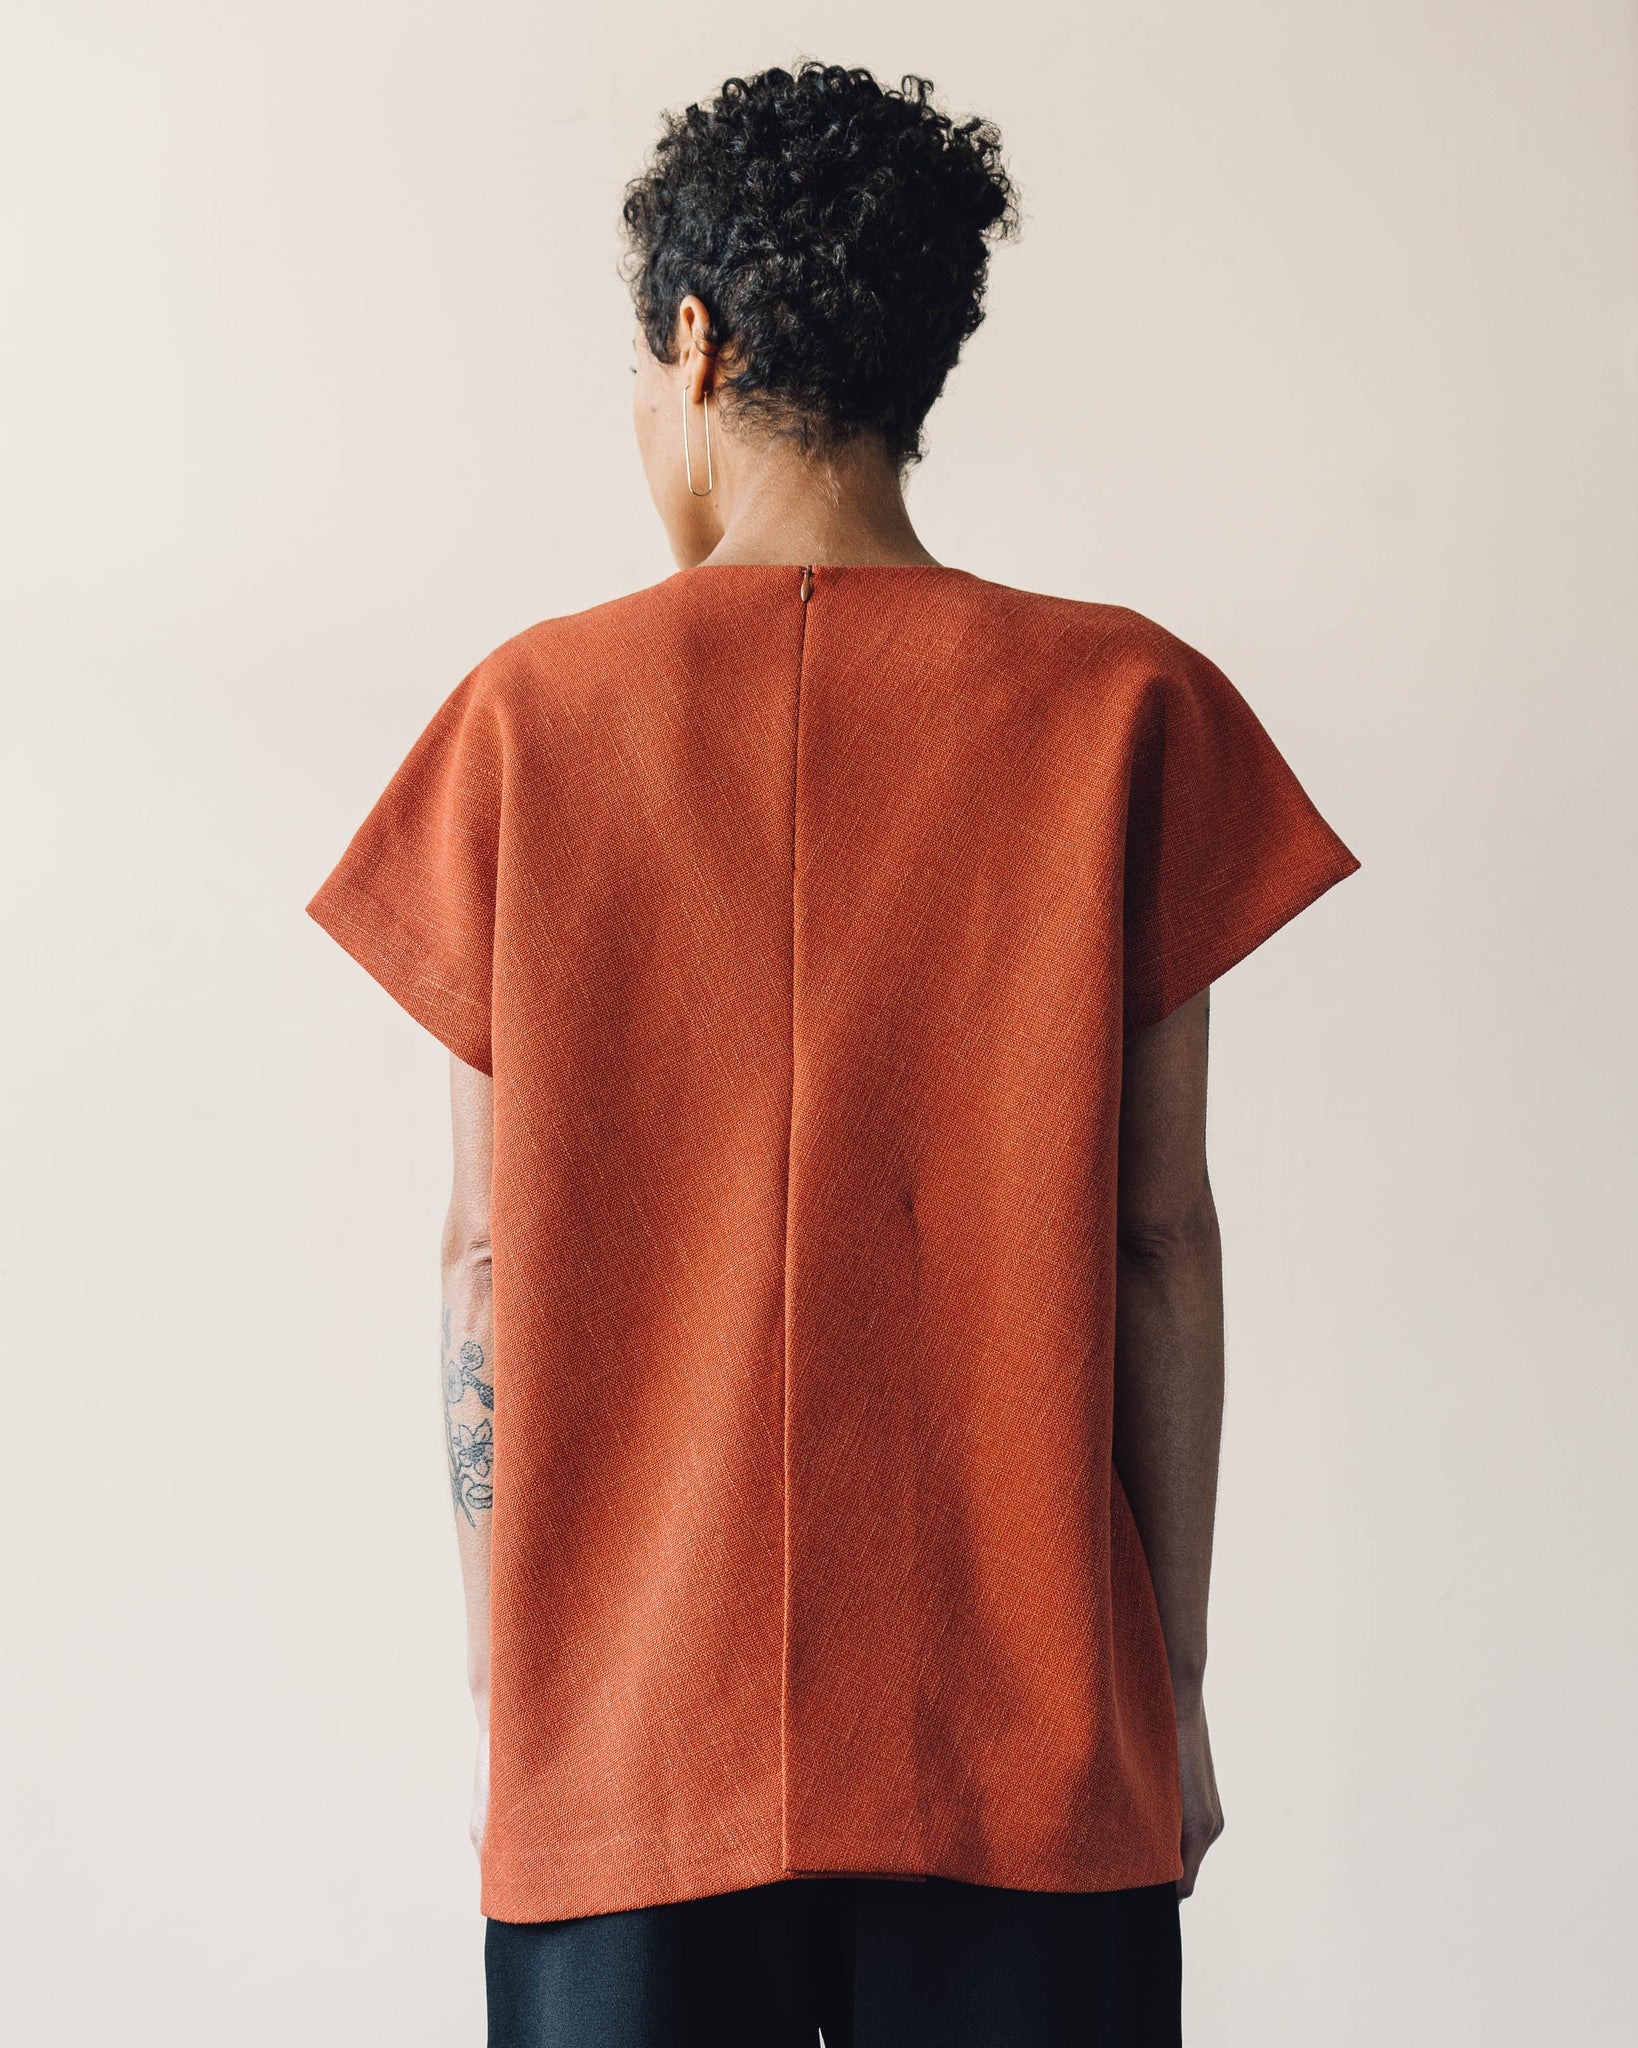 Kaarem Radix Dolman Sleeve Tapered Top, Orange Sesame